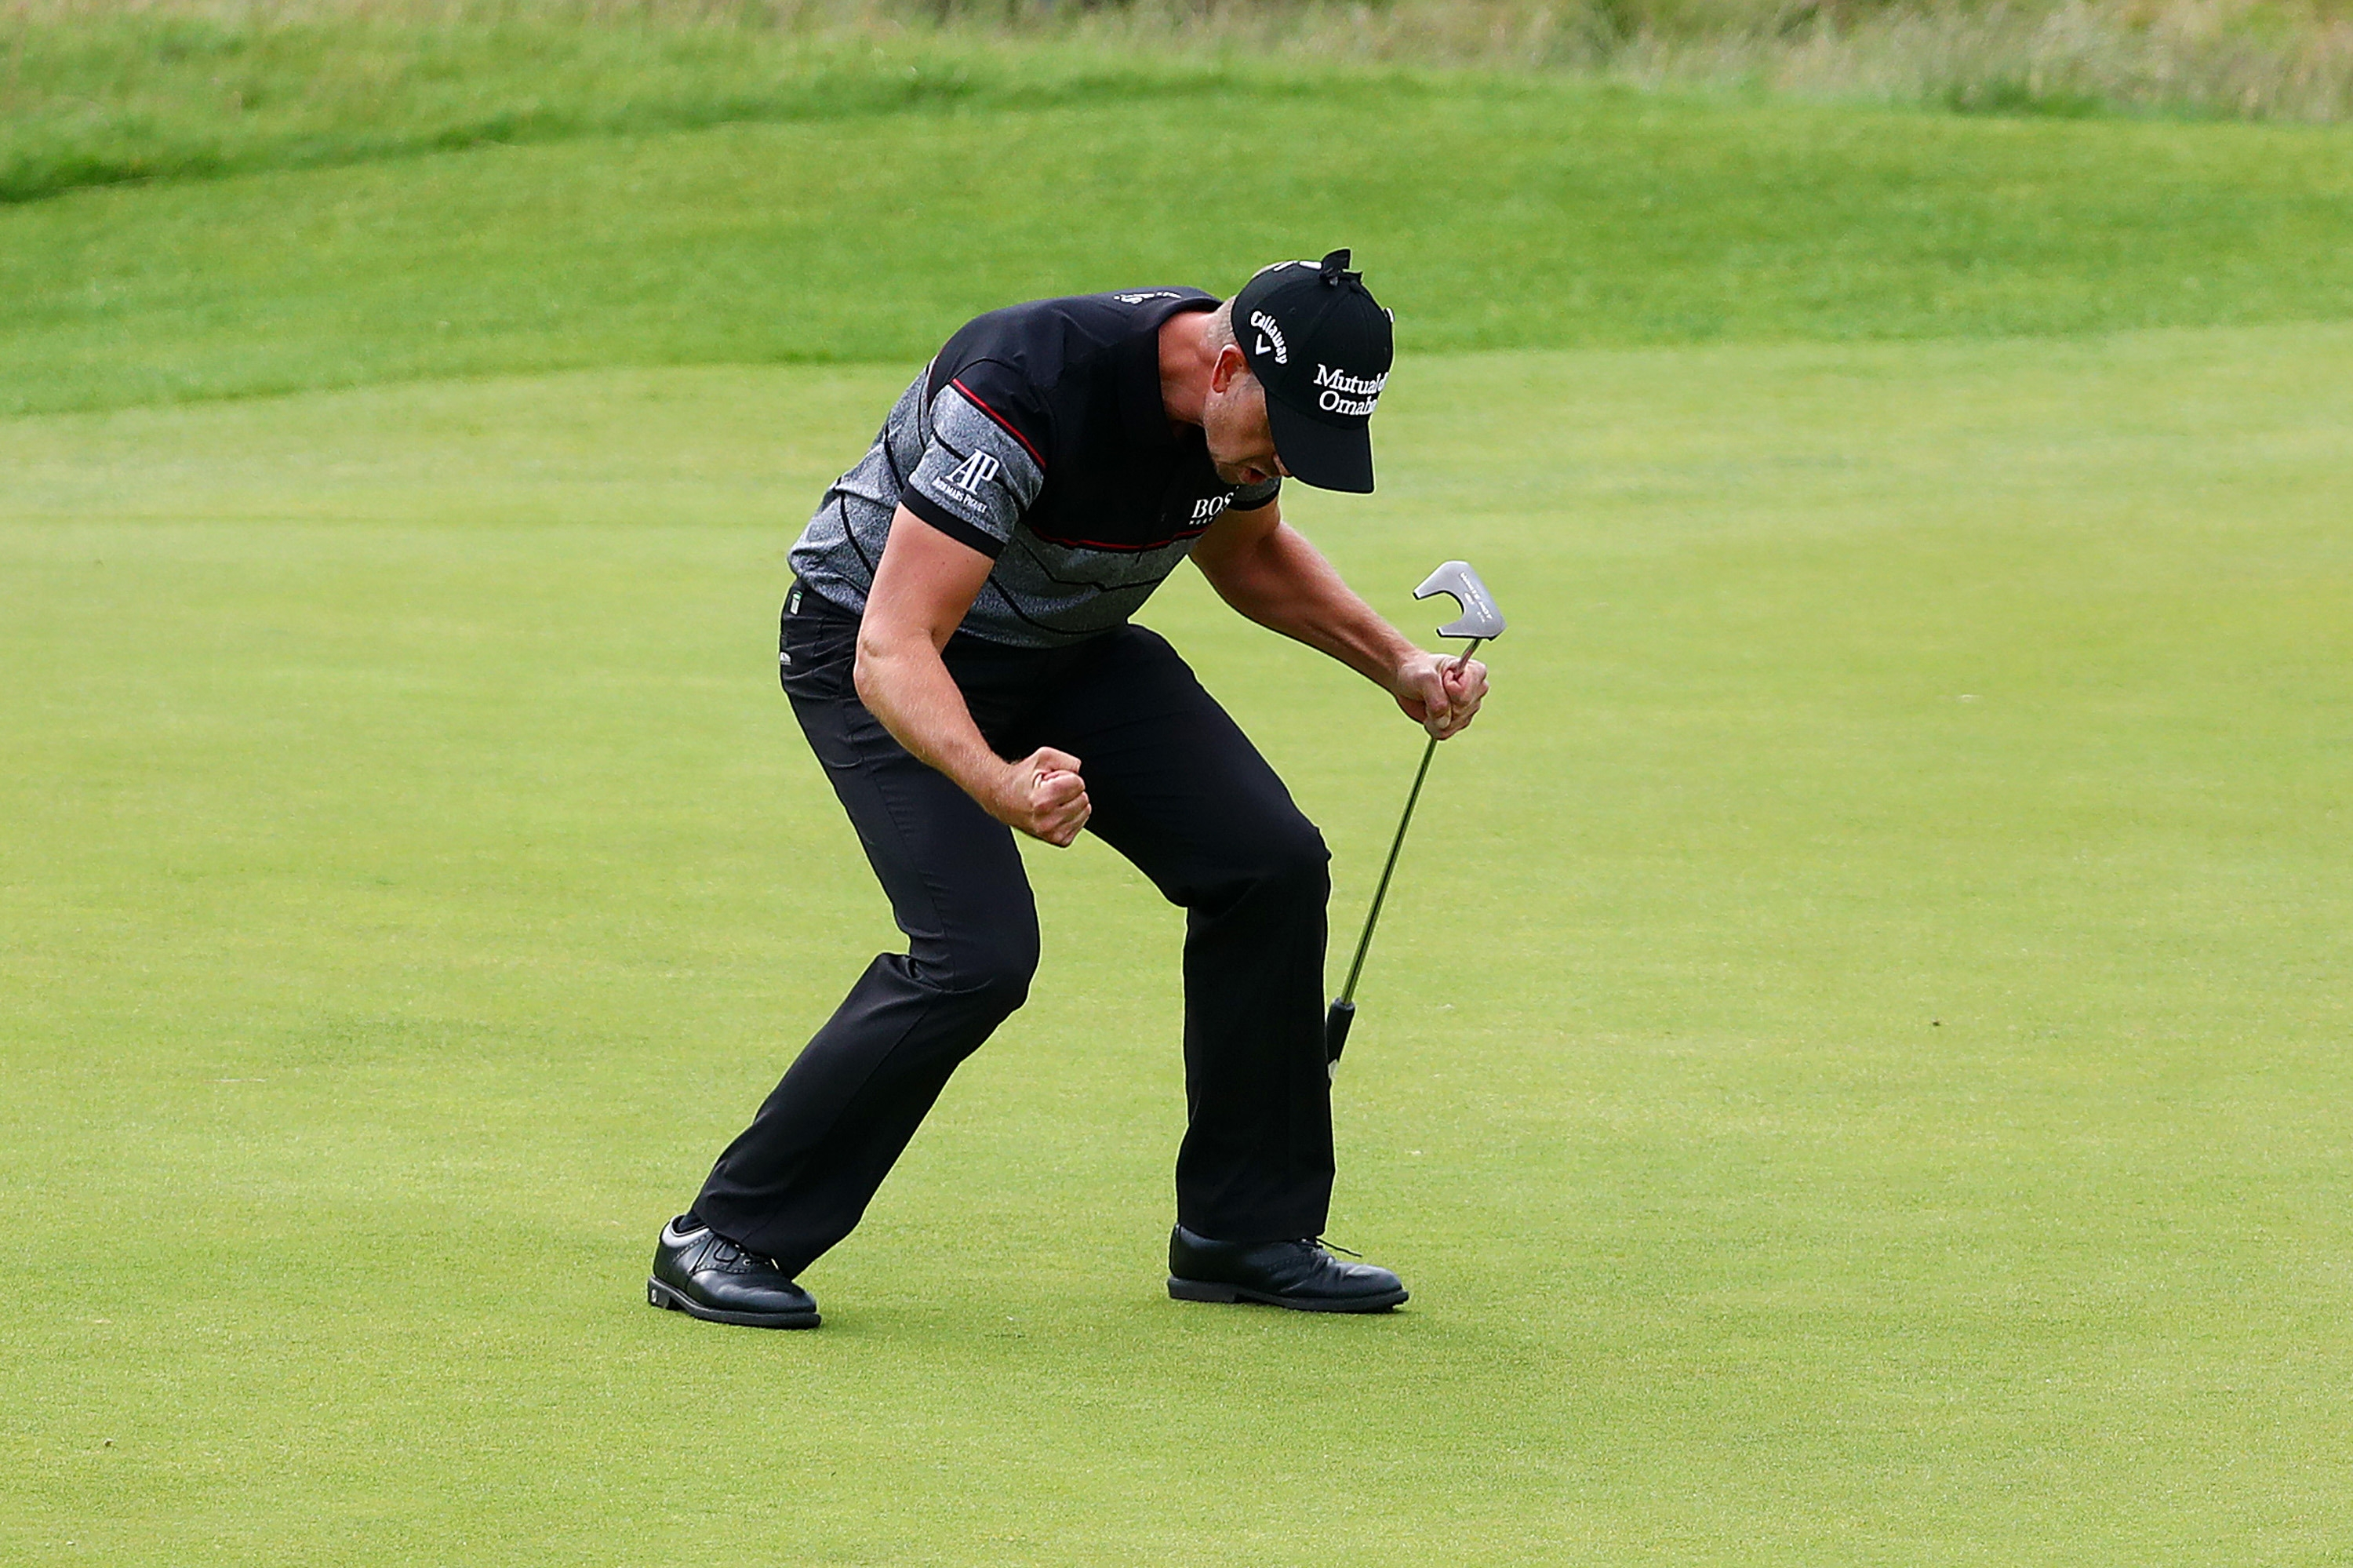 Henrik Stenson of Sweden celebrates after sinking his final putt to finish the British Open with an 8-under-par 63. He beat Phil Mickelson by three shots. (Getty Images)